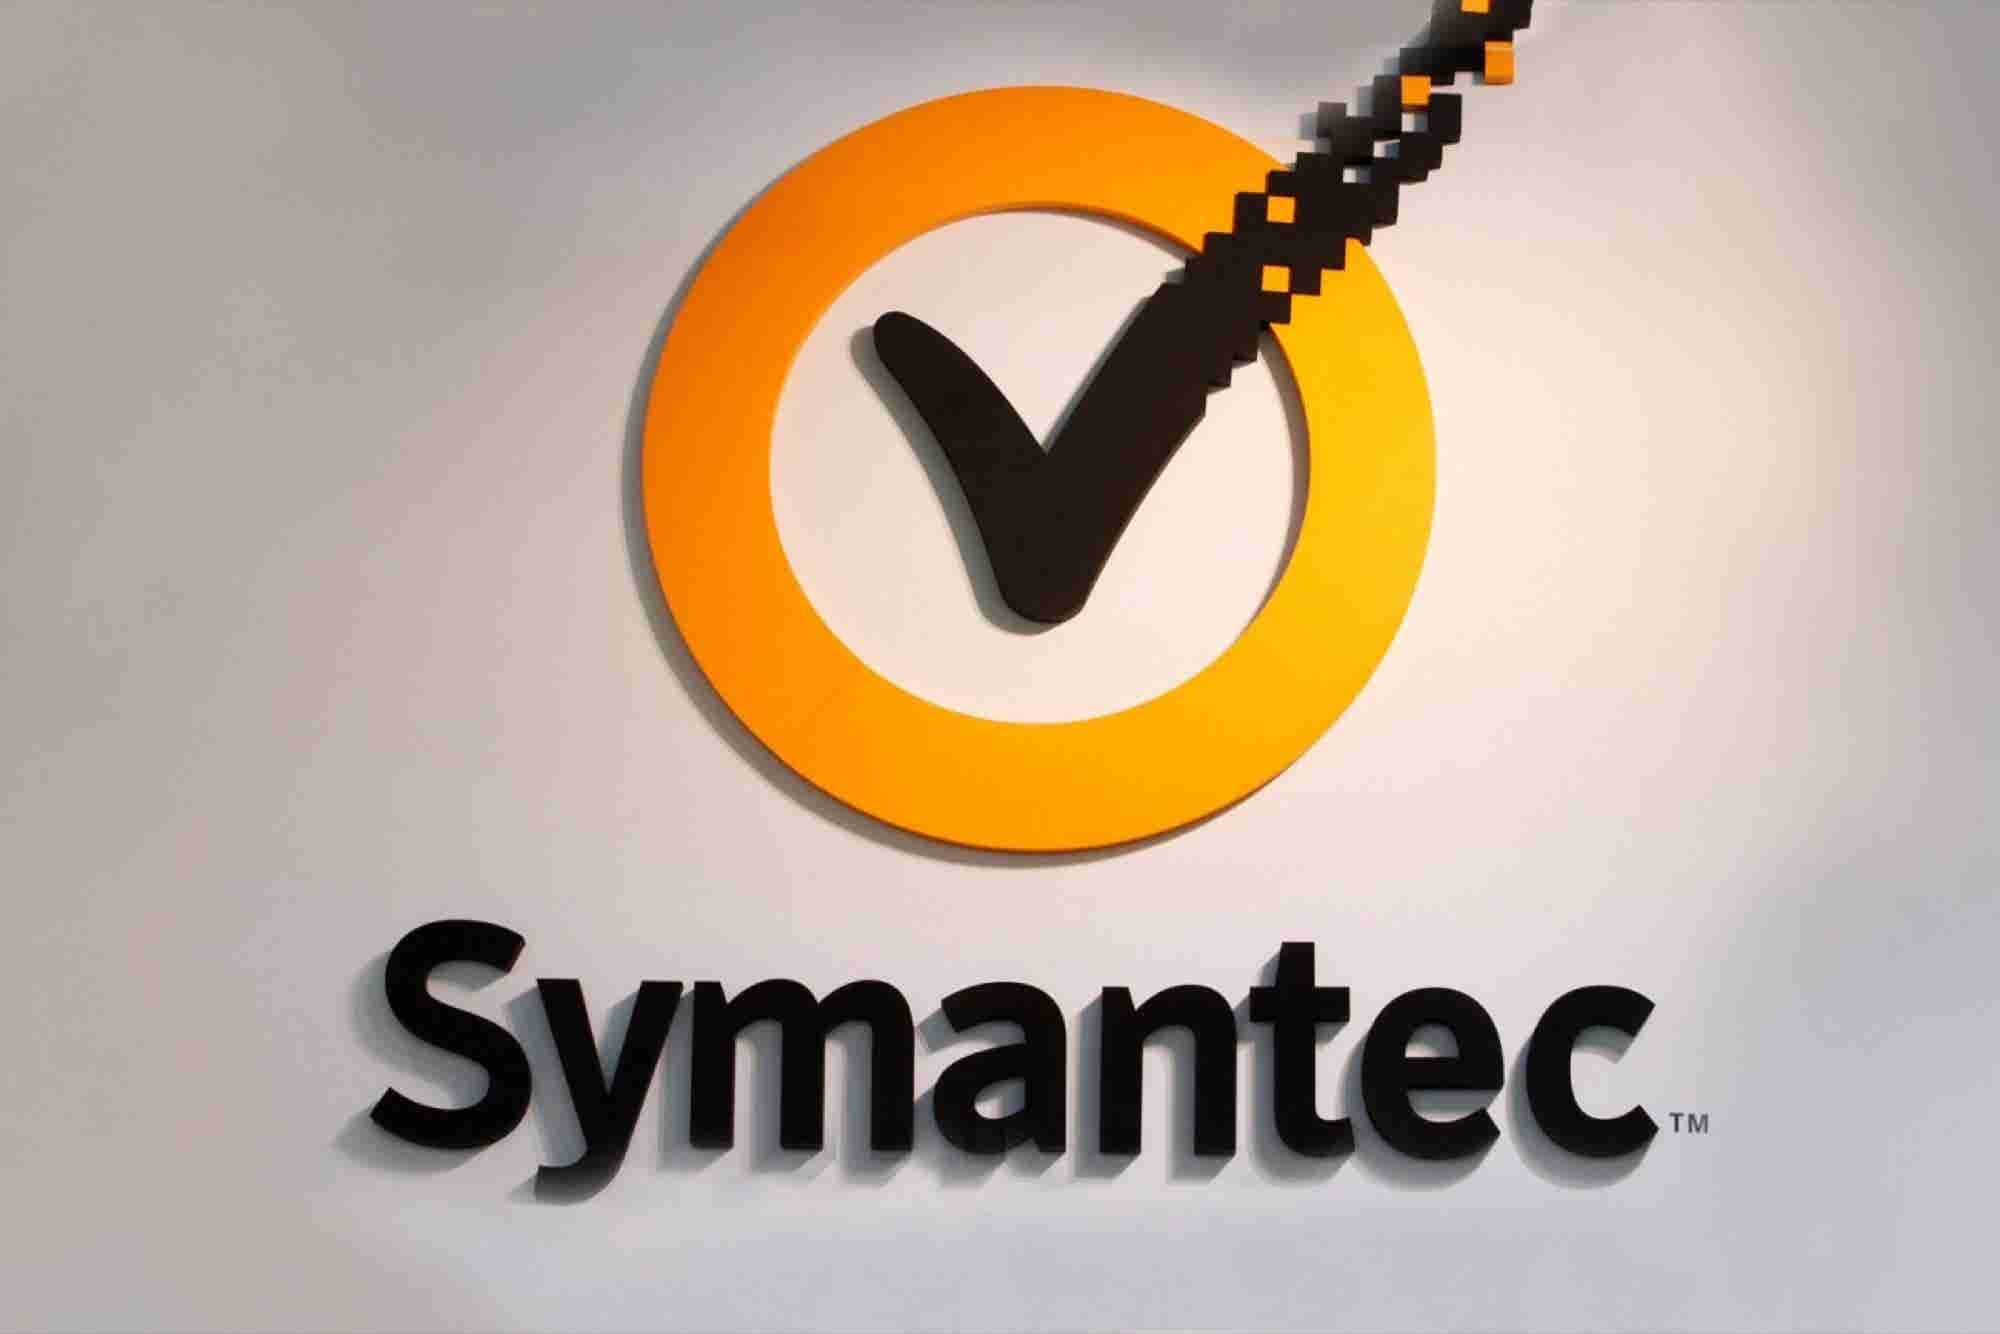 U.S. Agency Warns of Security Bug in Symantec's Antivirus Software